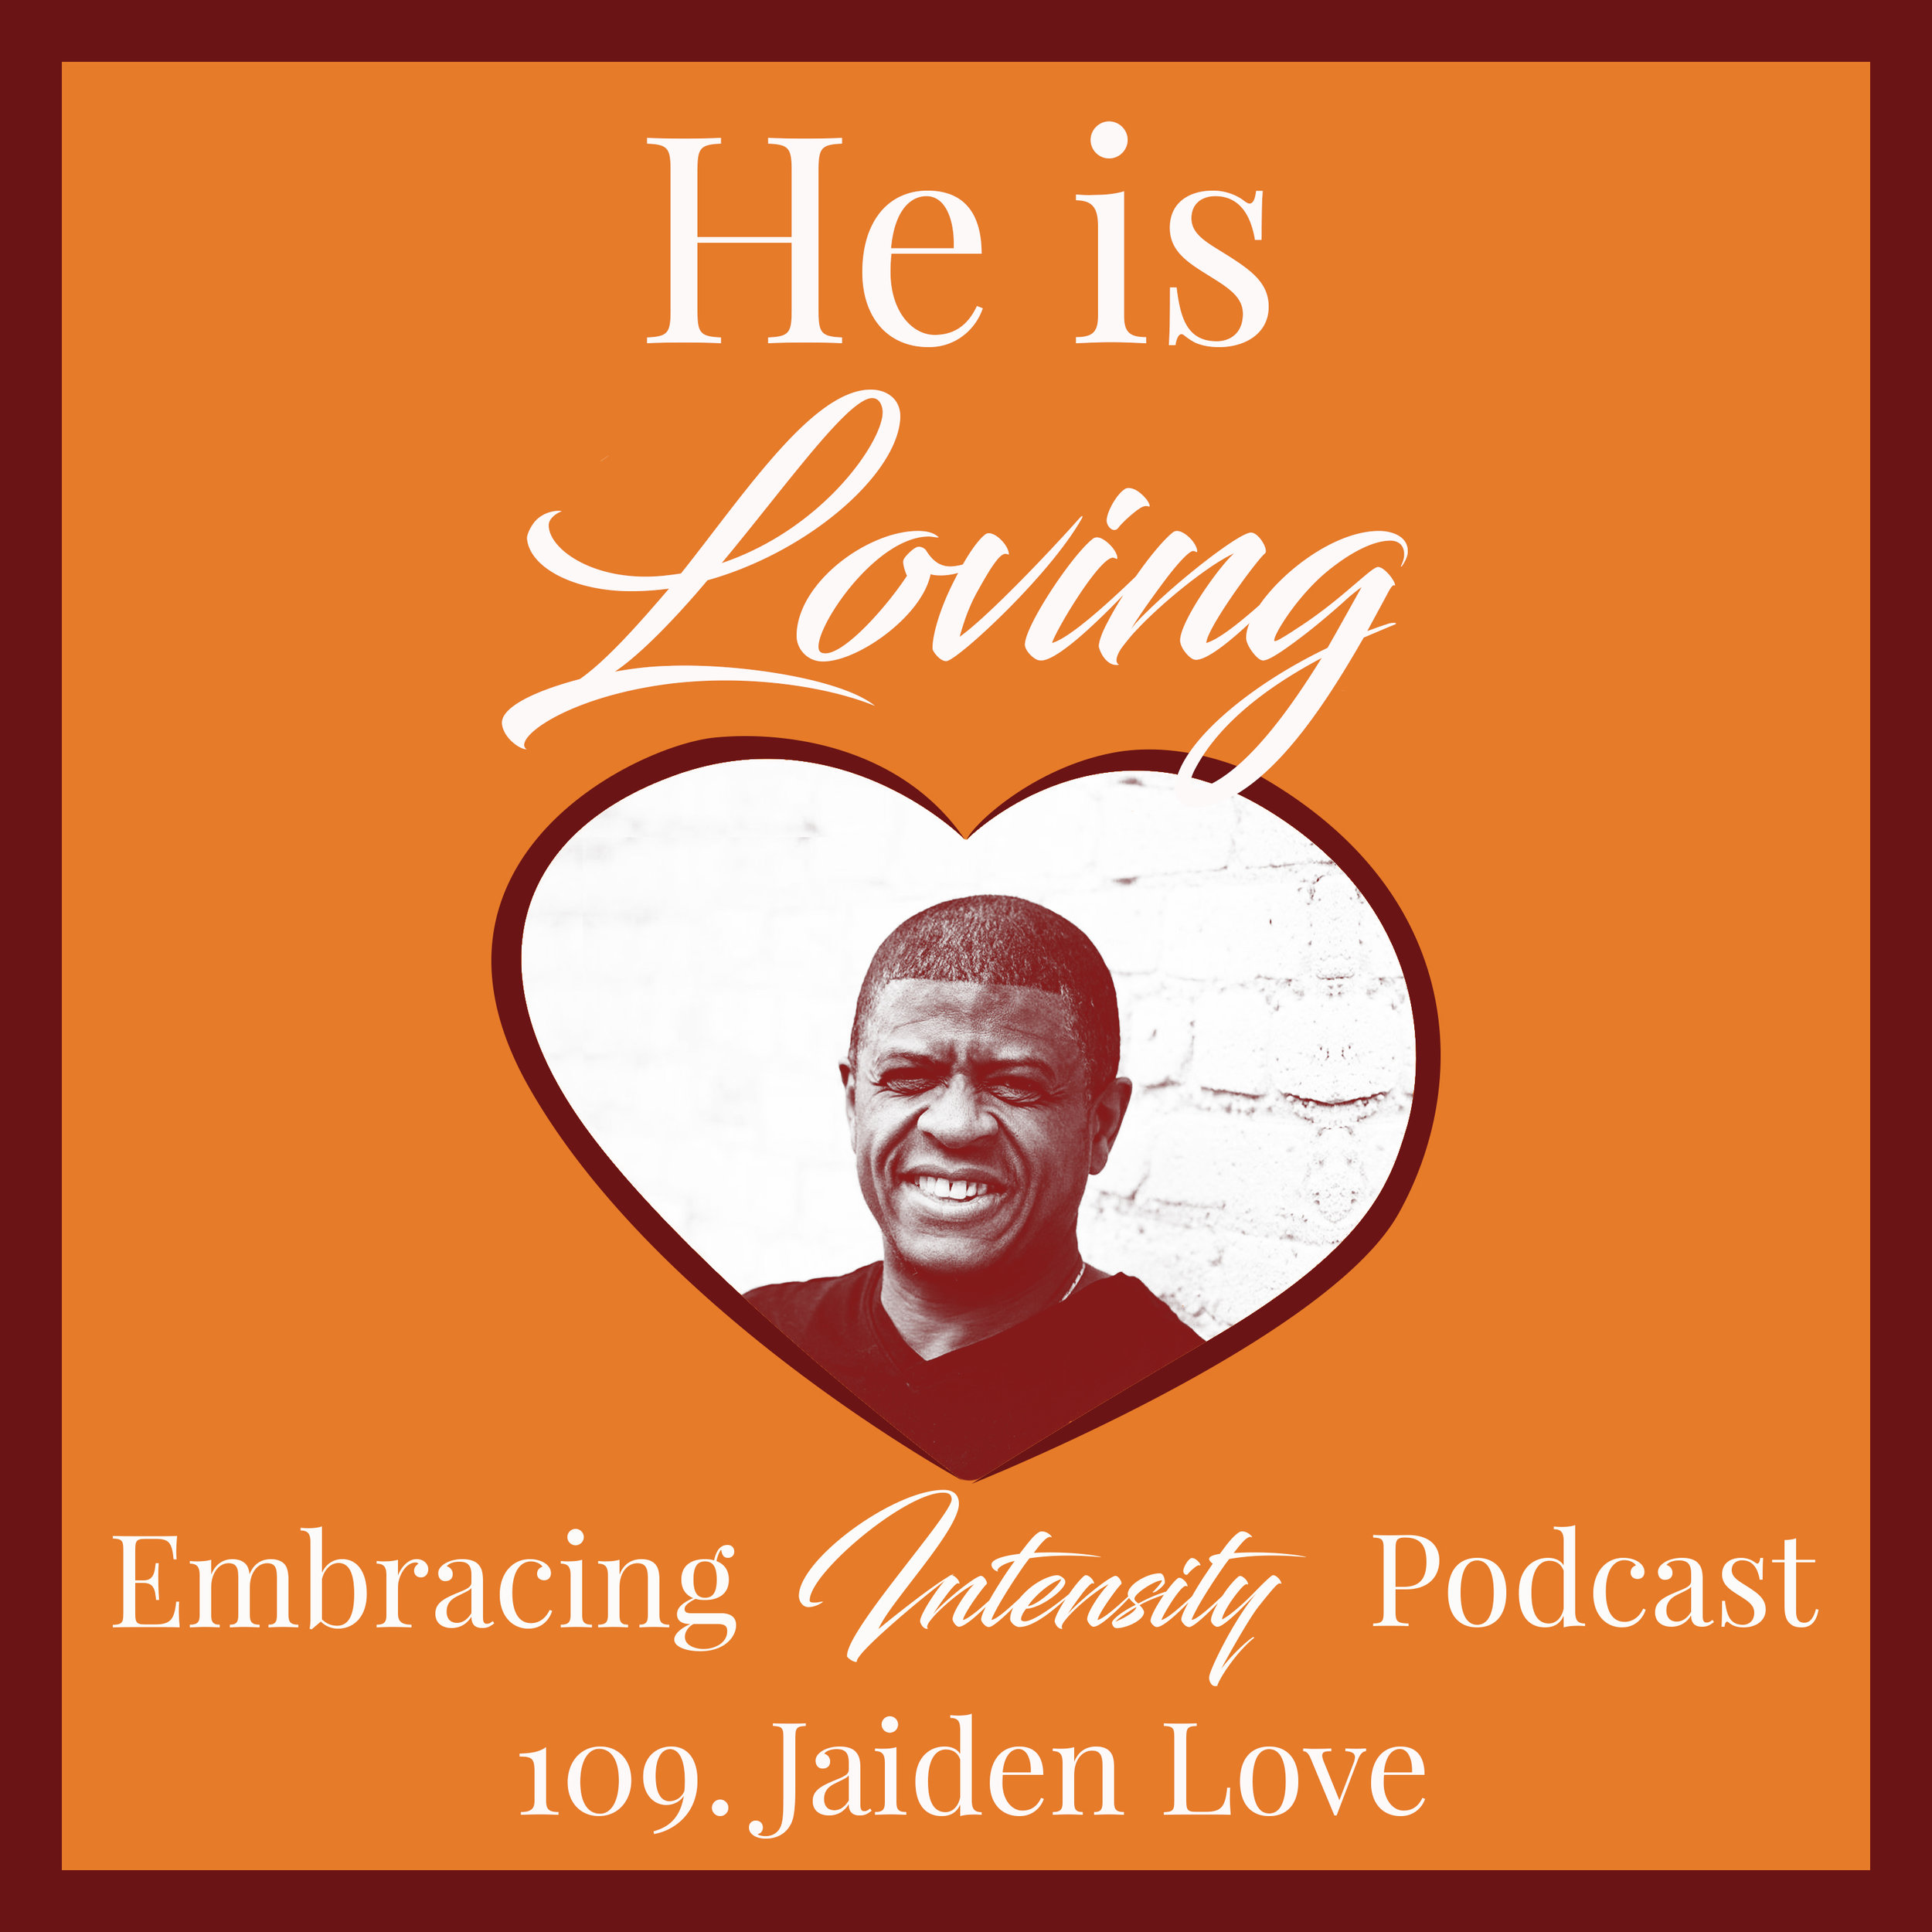 Embracing Intensity 109: Become the Best Version of Yourself